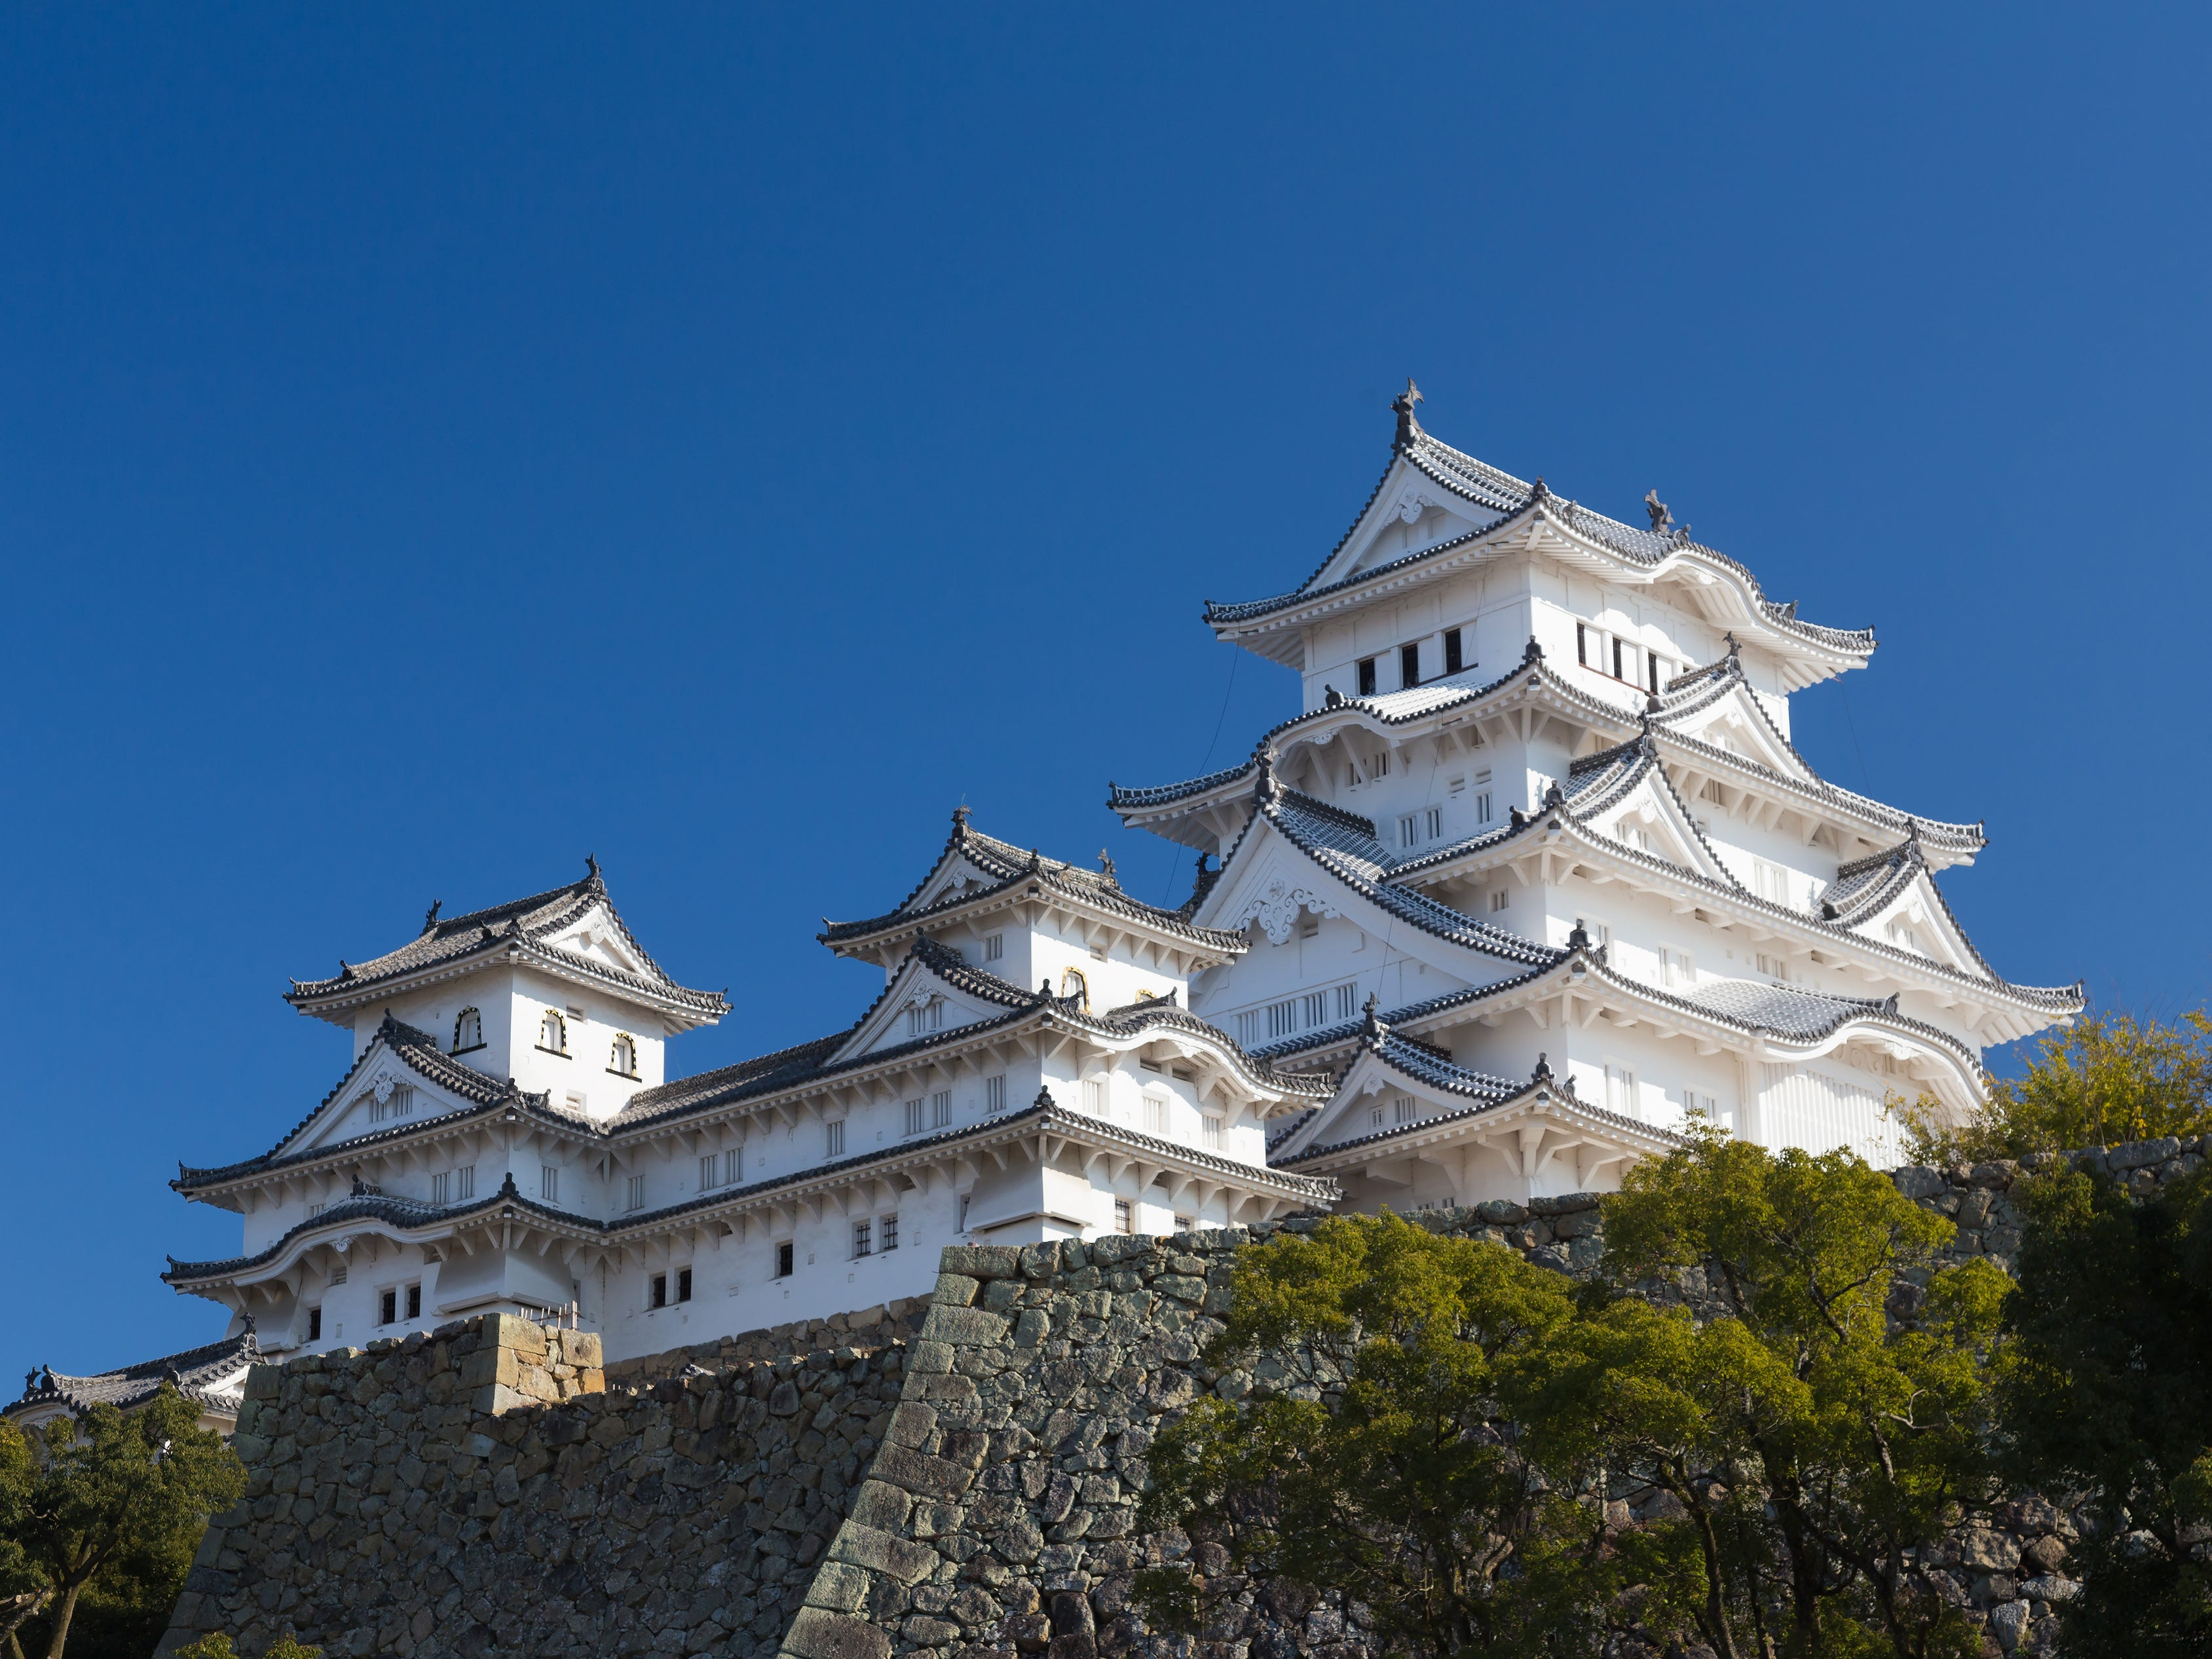 Himeji Castle in Himeji, Japan: From Kyoto, you can take a day trip to visit the most beautiful castle in Japan — Himeji Castle. With five stories of elegant decoration and exquisite details, this castle is a remarkable sight rising above the horizon.